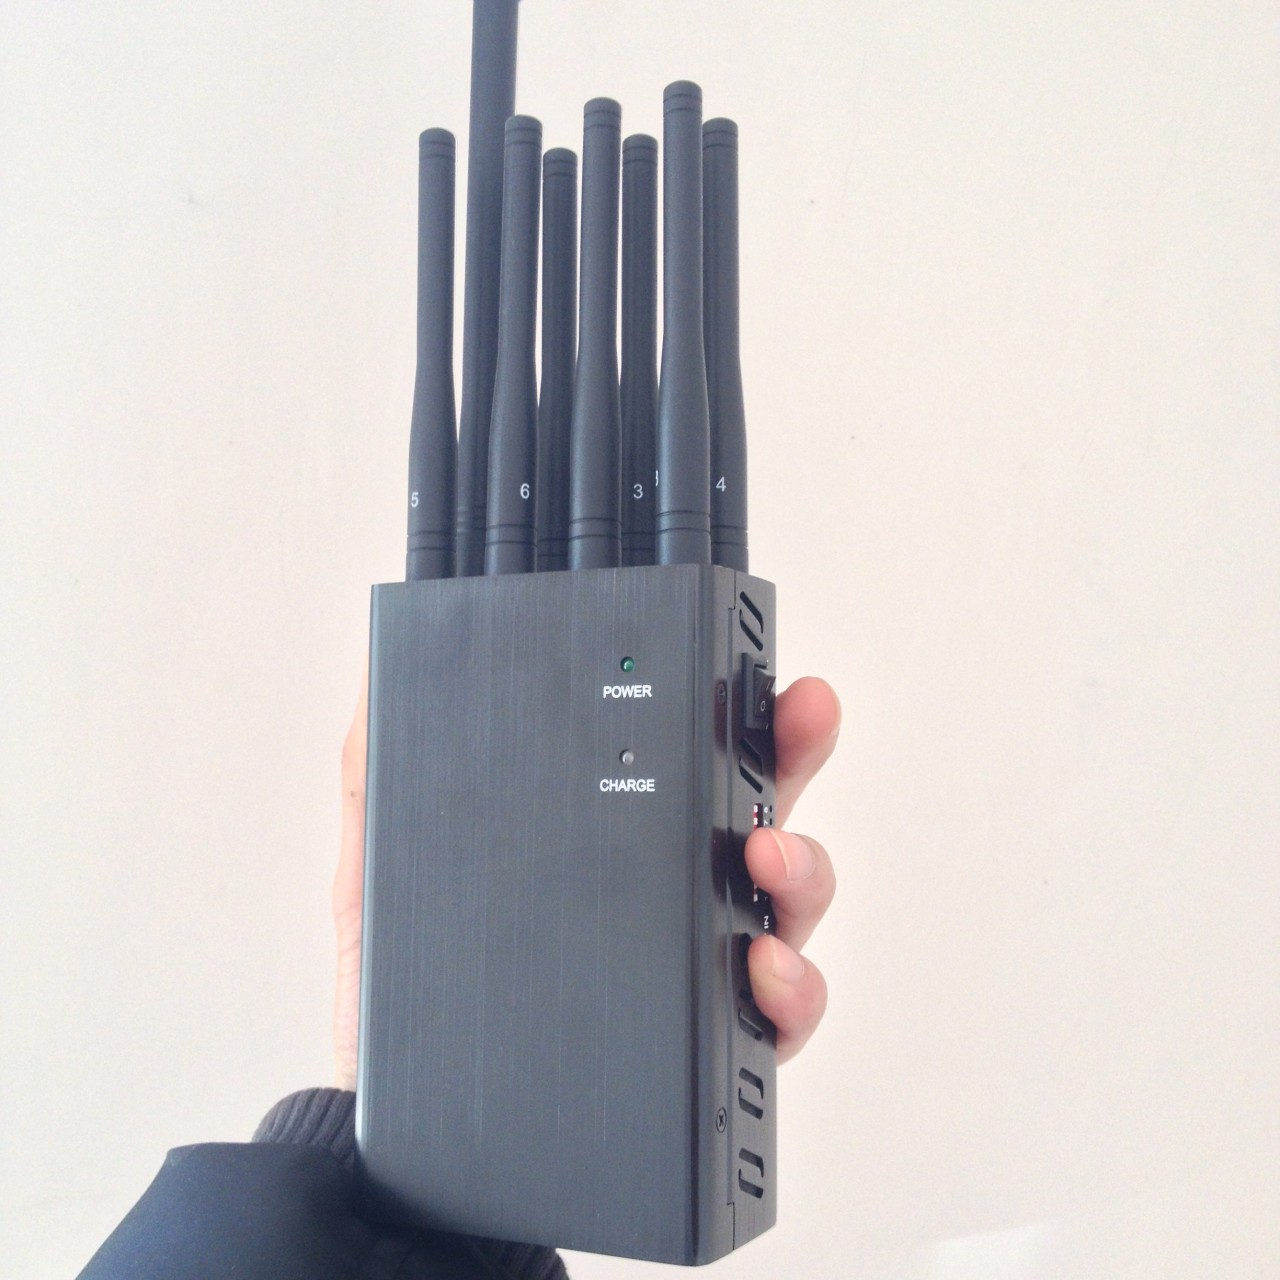 Selectable 8 Bands Portable GSM 2G 3G 4G All Worldwide Phone Signal Jammer